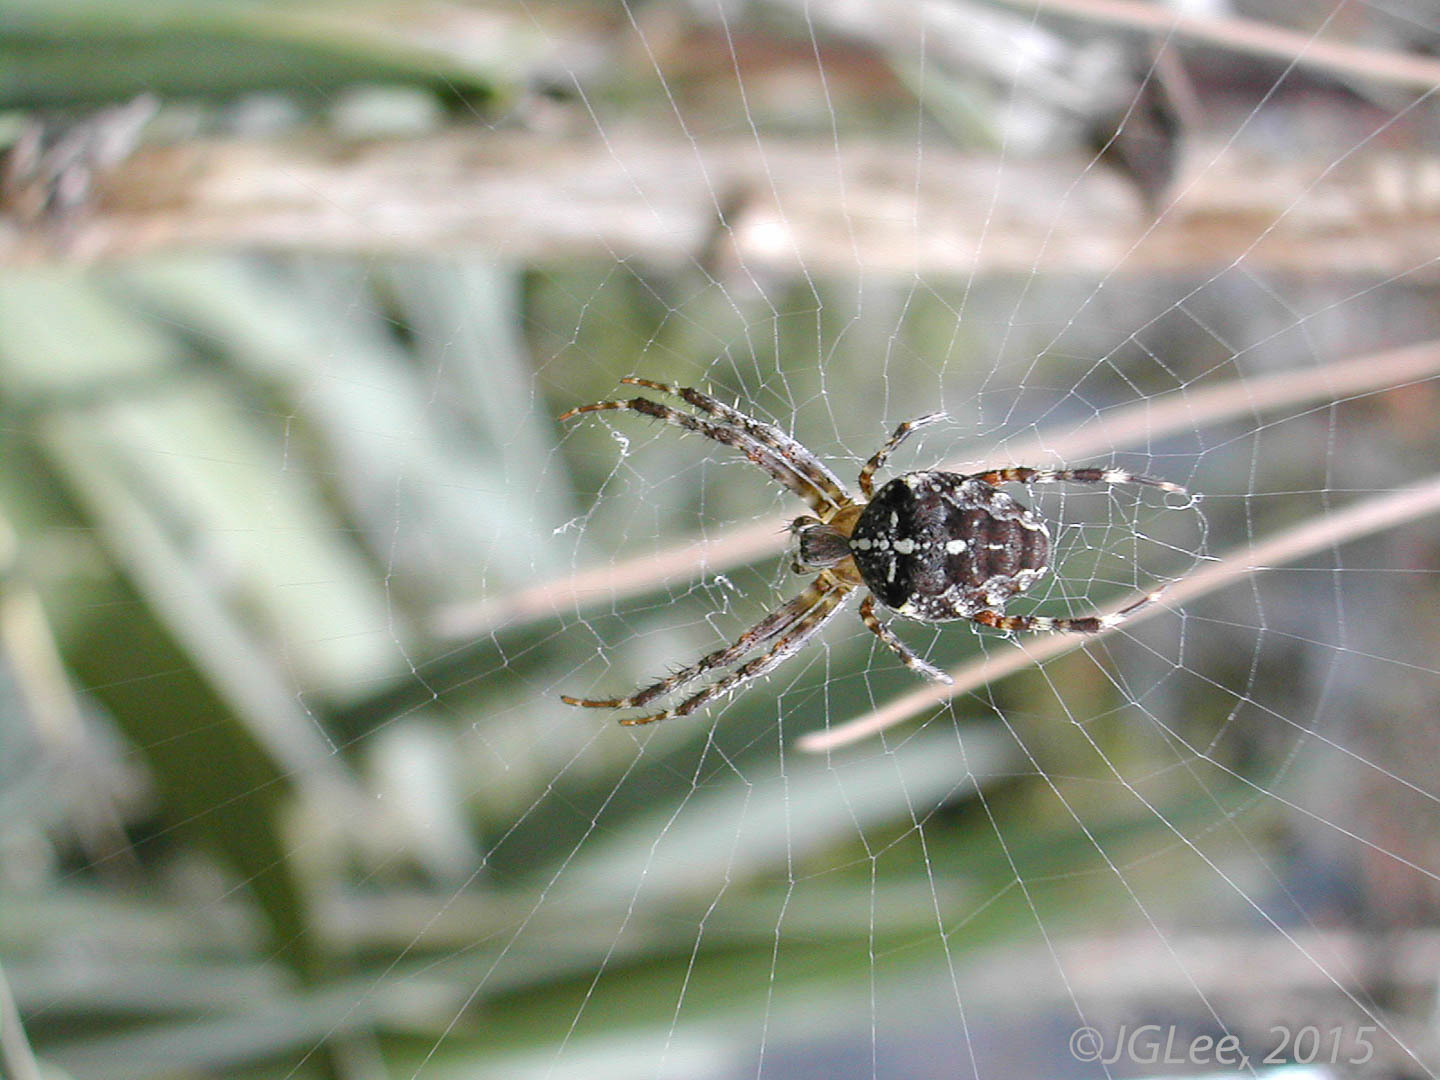 Spider on a Web I